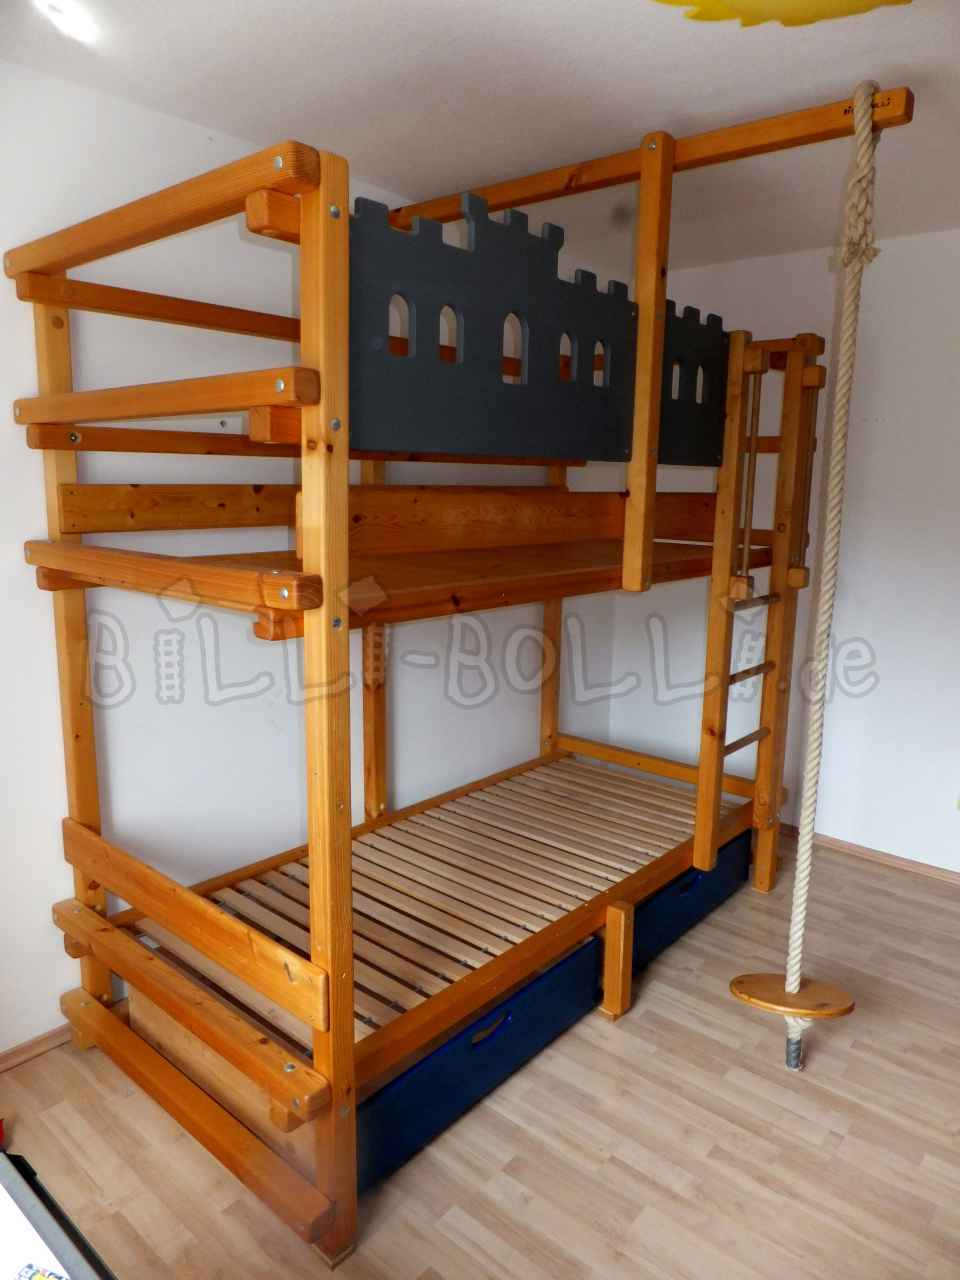 Oiled pine bunk bed for mattress size 90 x 200 cm (Kids furniture second hand)